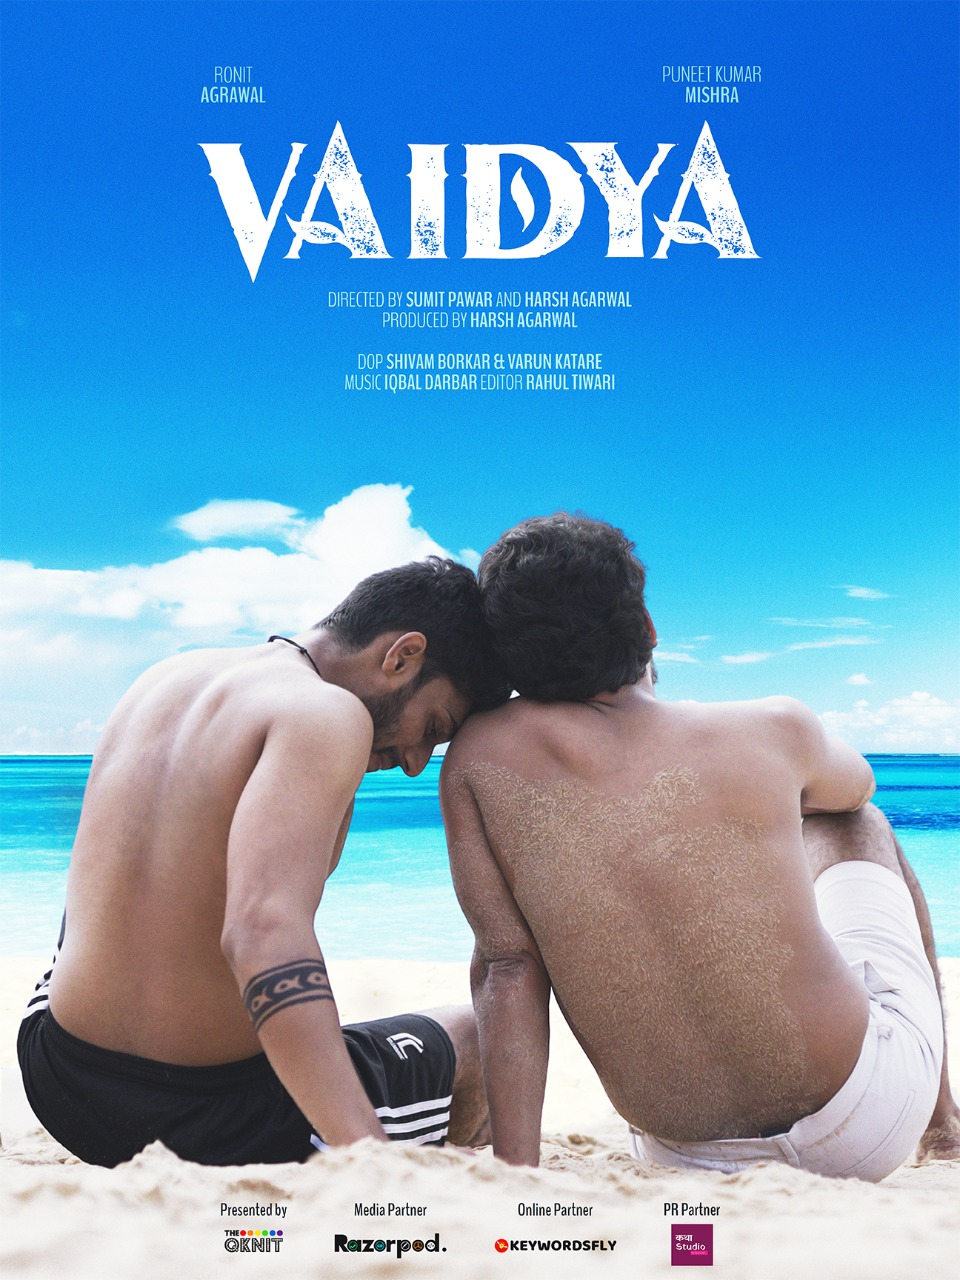 Vaidya: An Ambiguous And Endearing Tale Of Queer Love